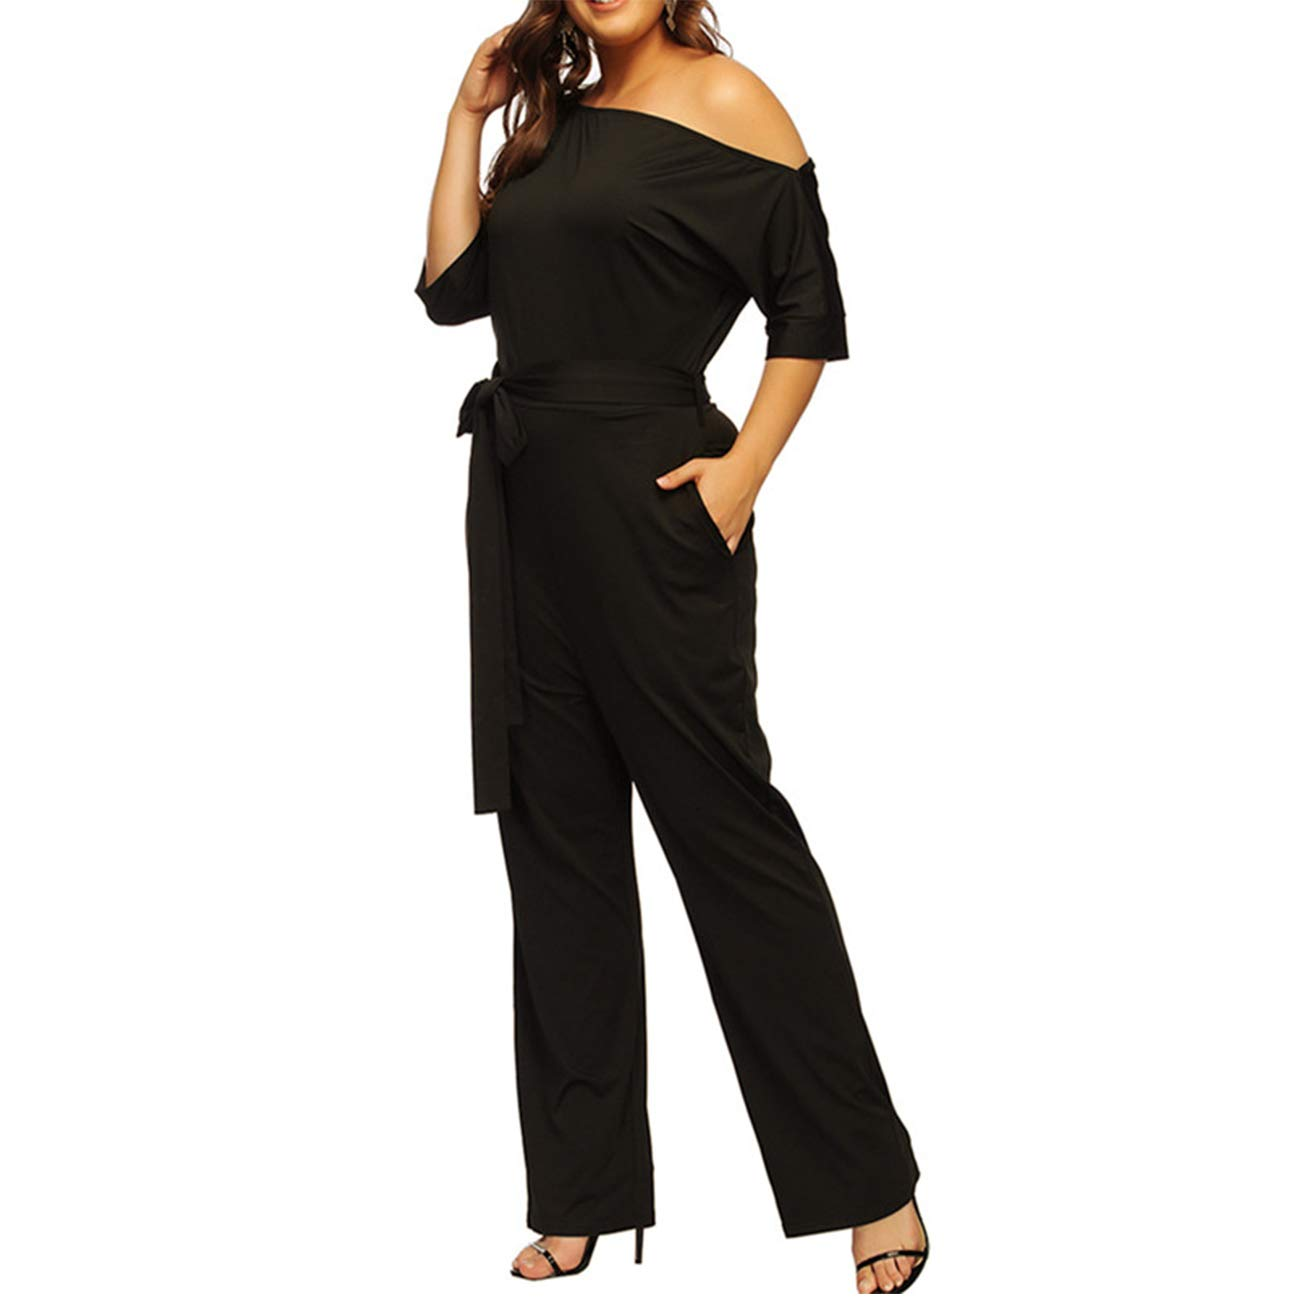 6dc927867d8 Top 10 wholesale Best Plus Size Jumpsuits - Chinabrands.com